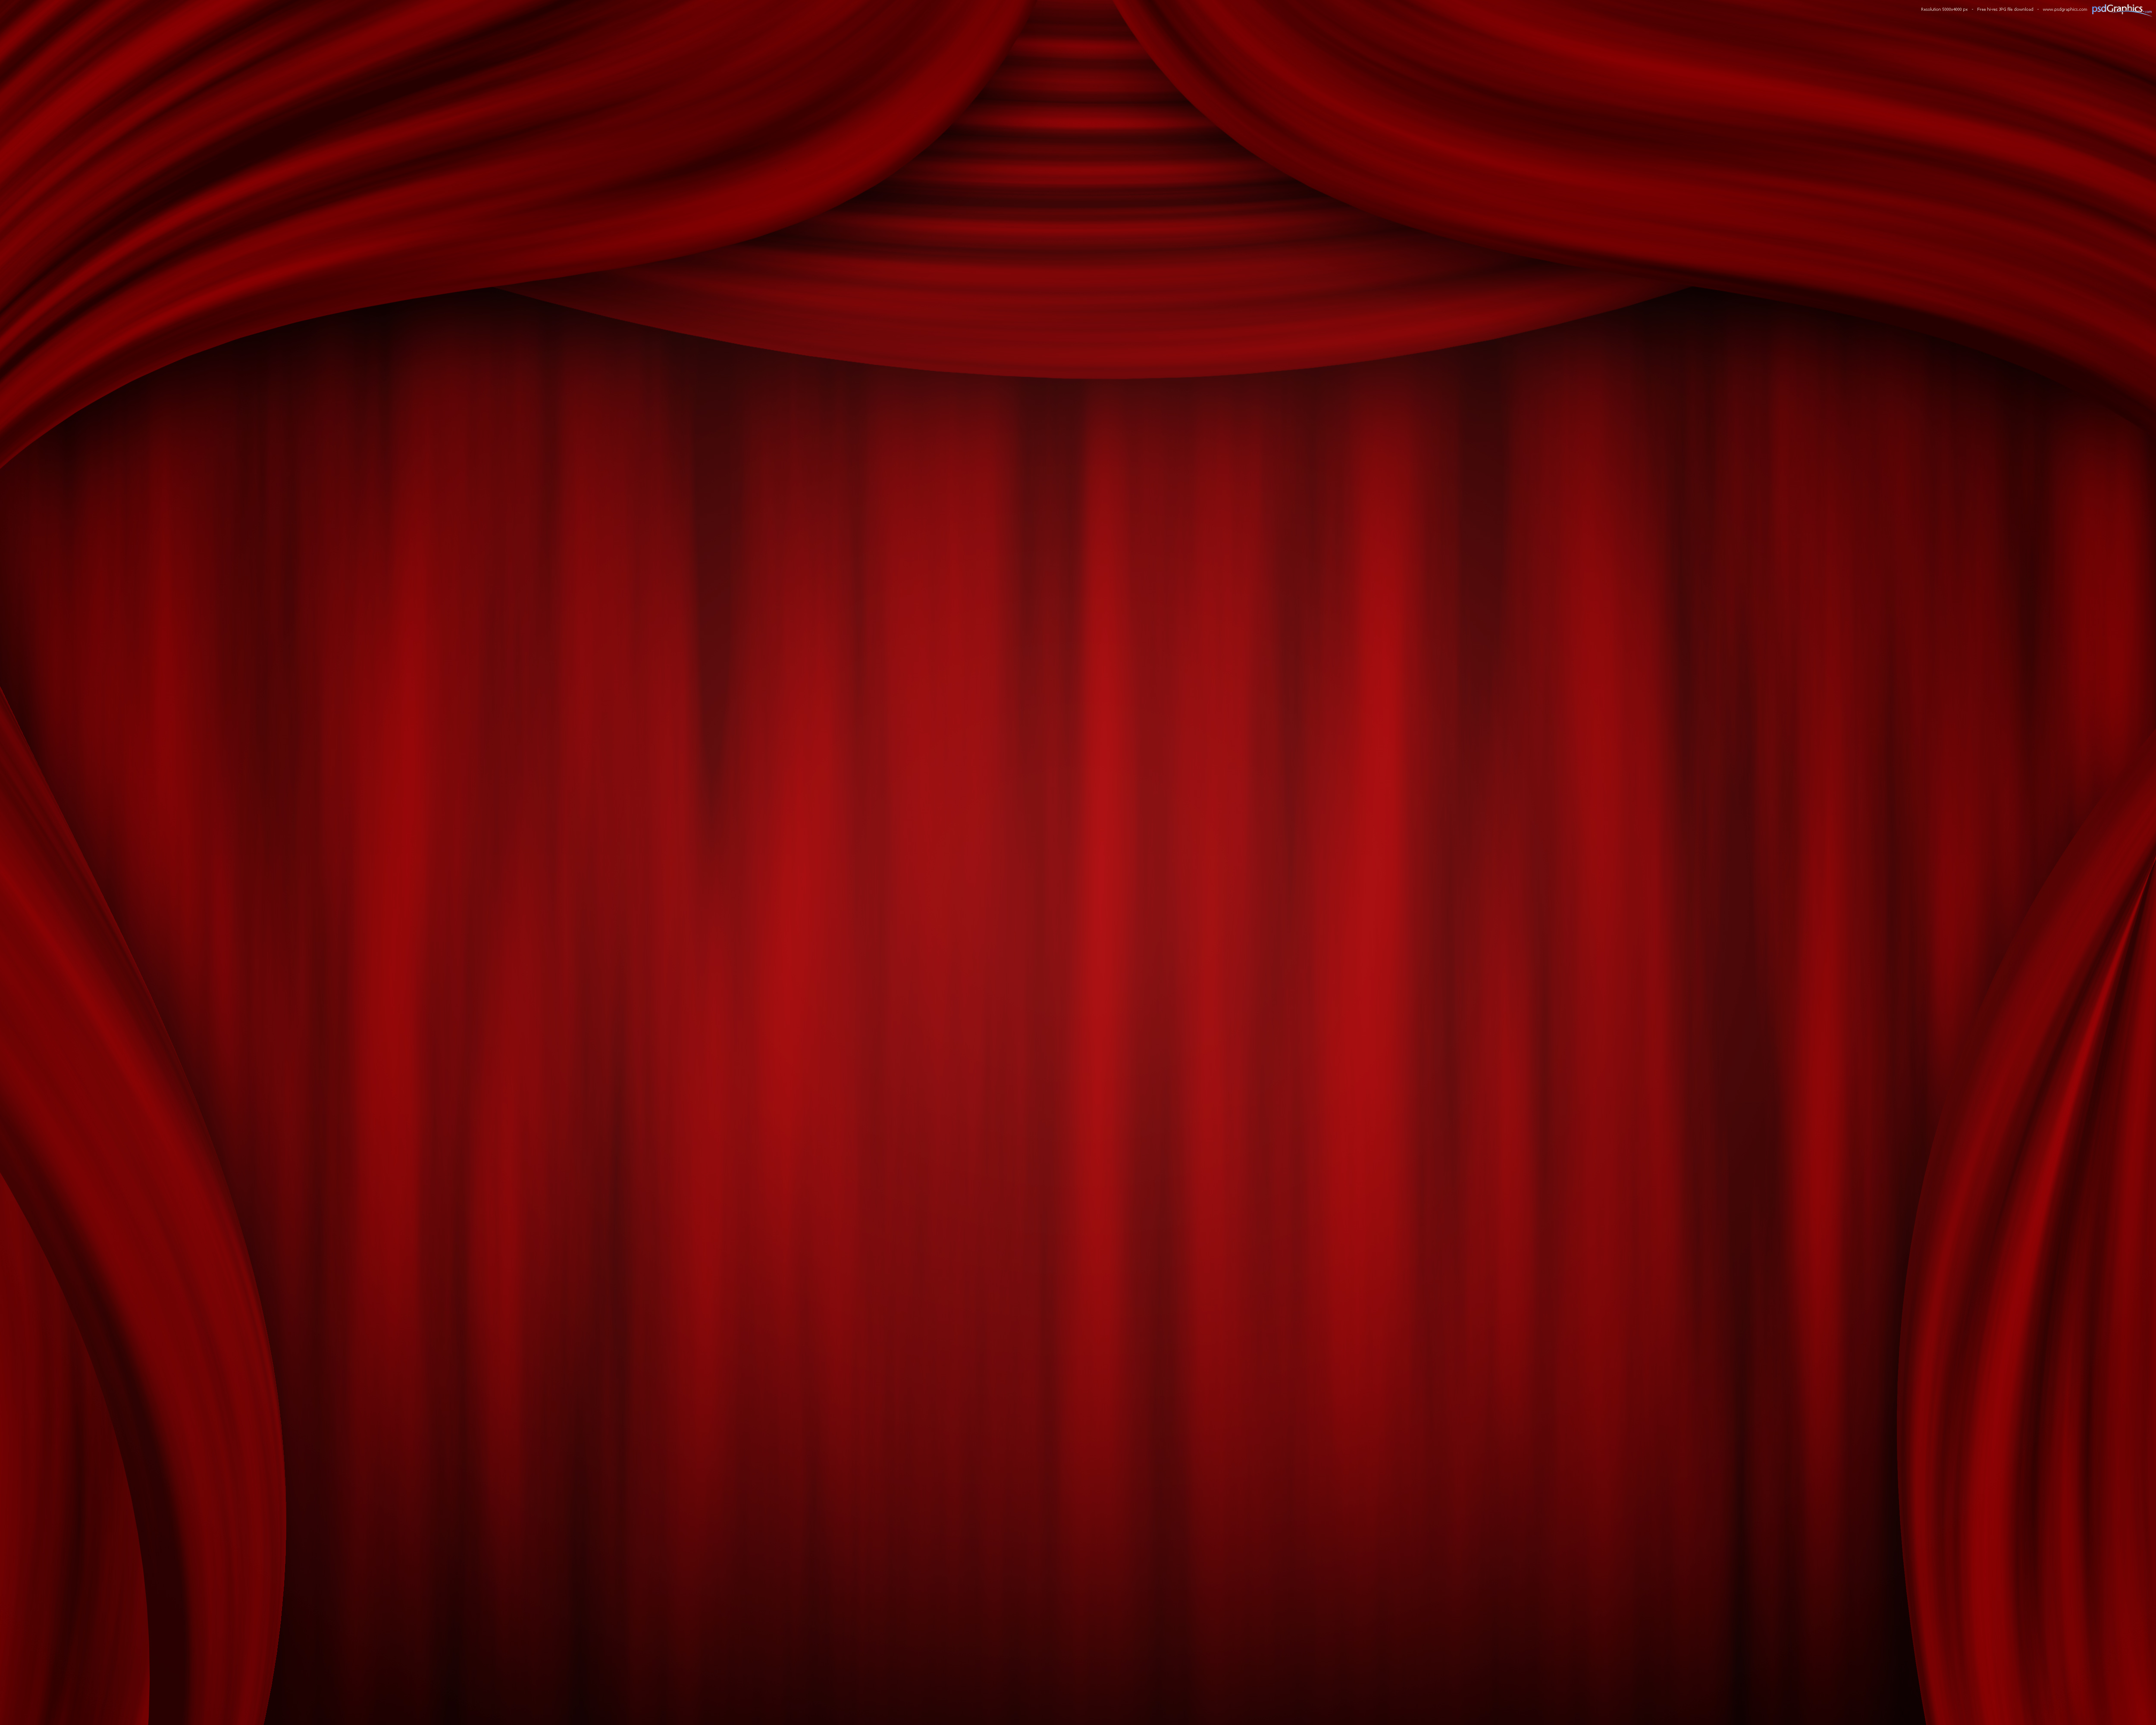 Theatre clipart red curtain PSDGraphics Free Download stage Art